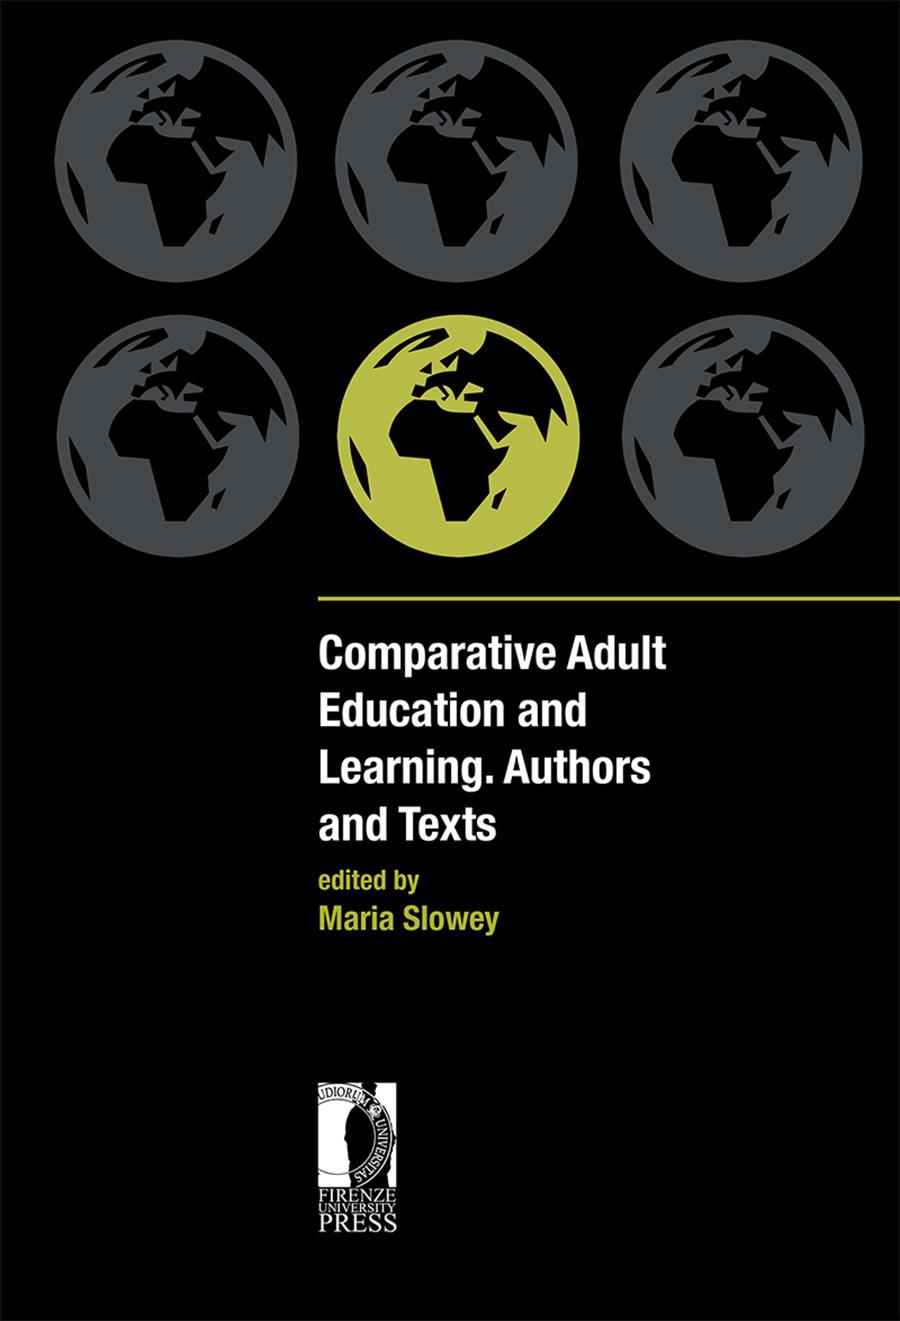 Comparative Adult Education and Learning